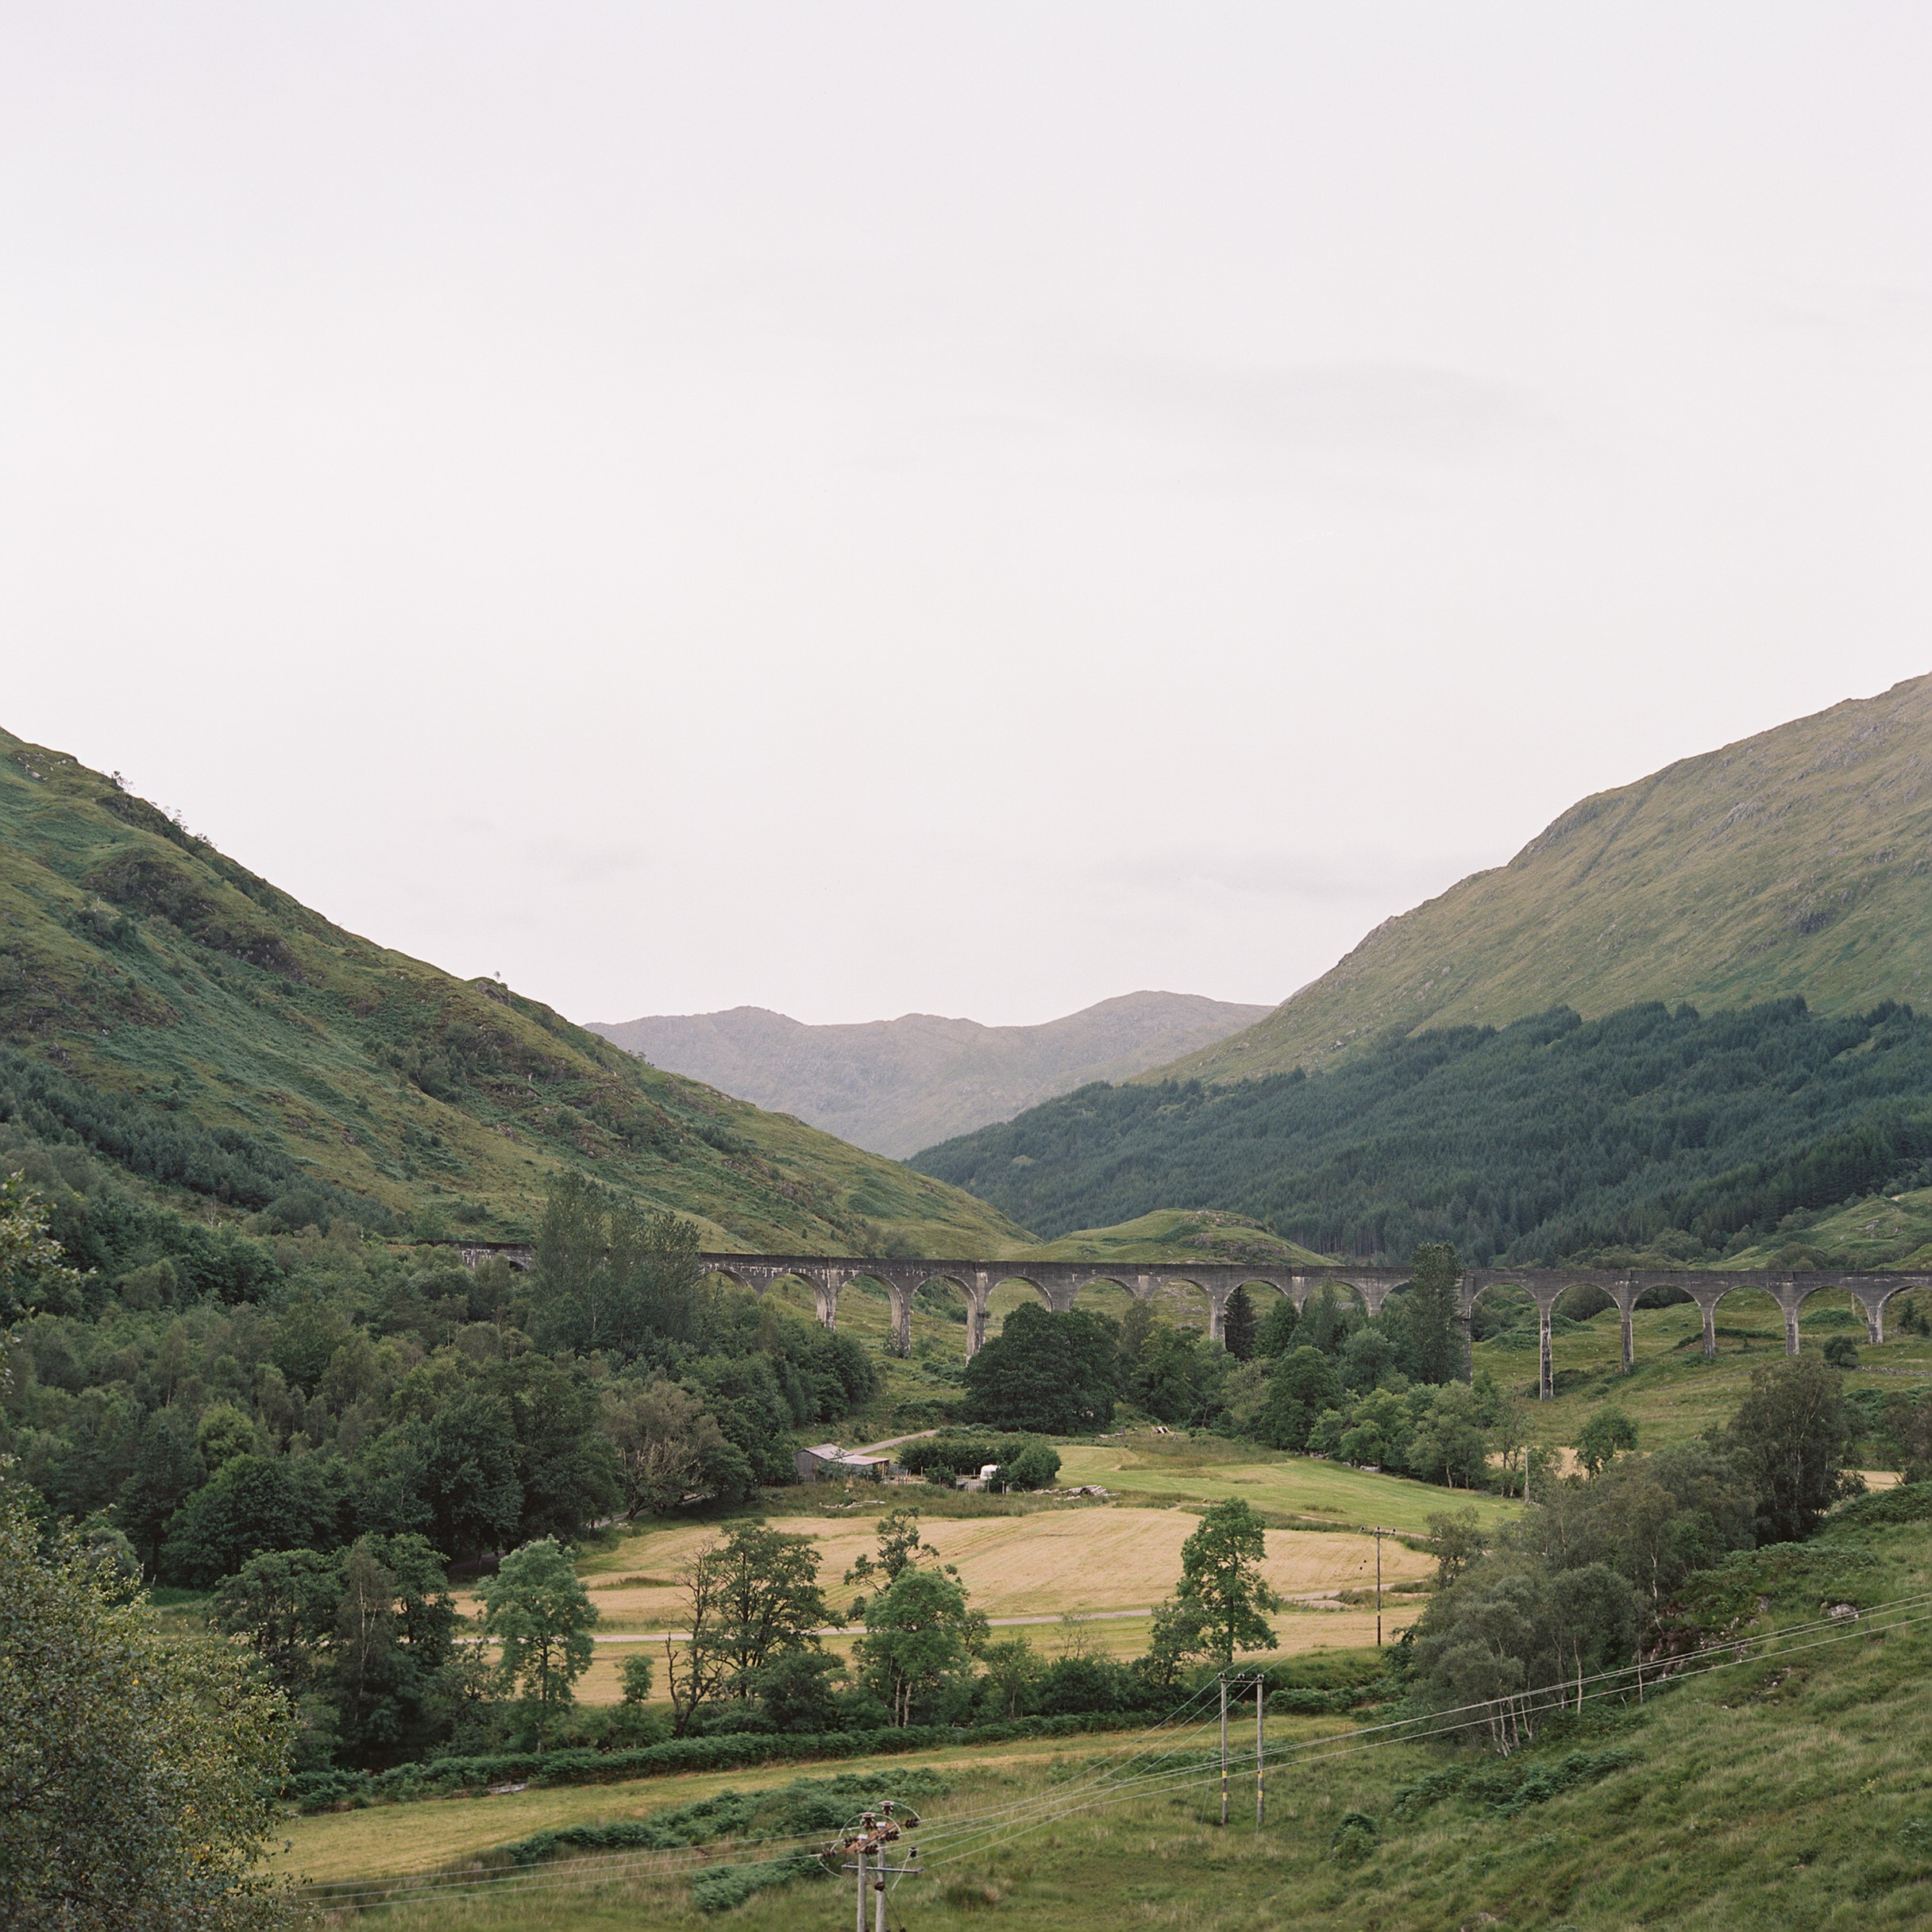 Glenfinnan Viaduct - All aboard the Hogwarts Express...